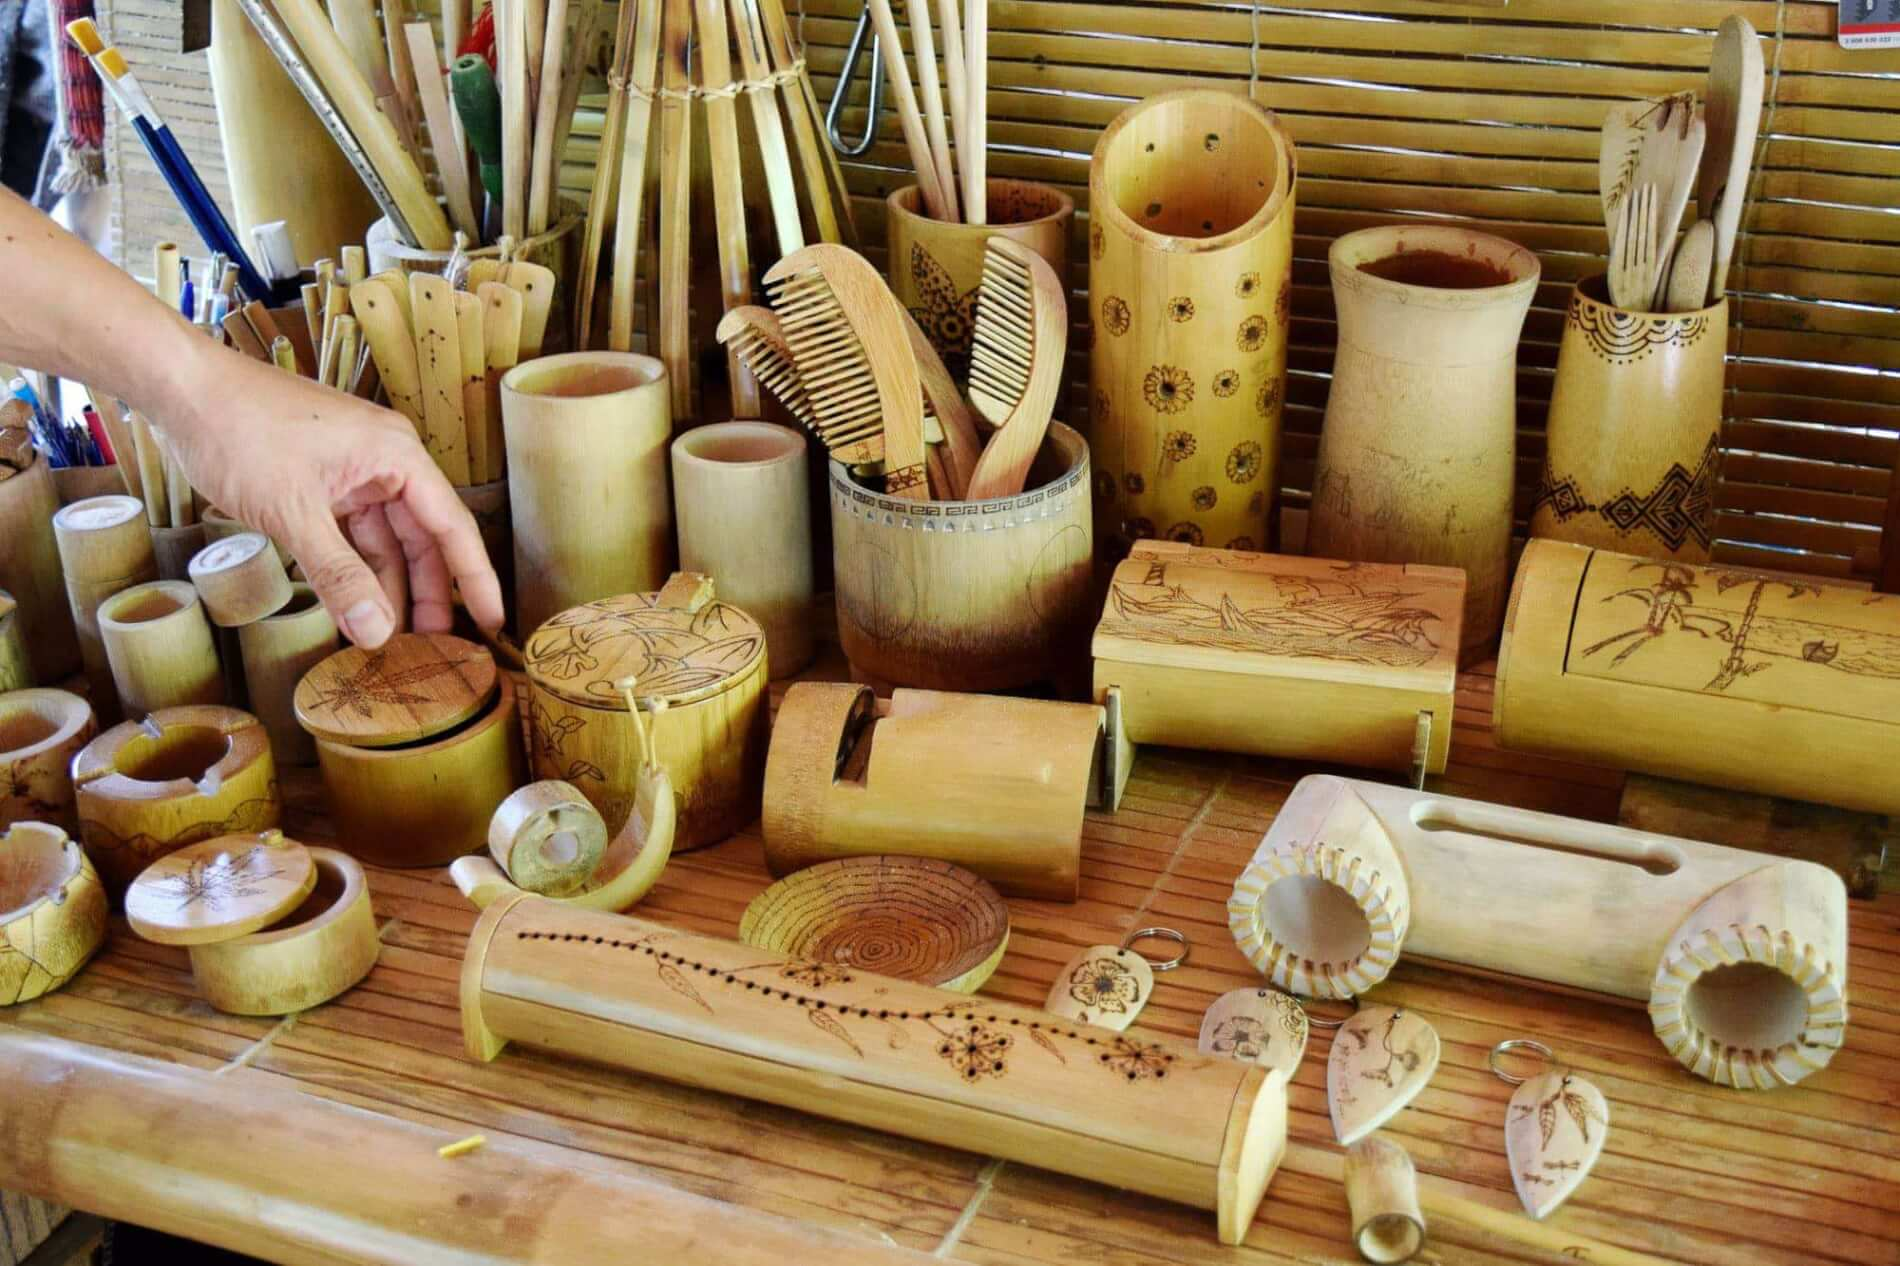 Taboo Bamboo - craft workshops - items